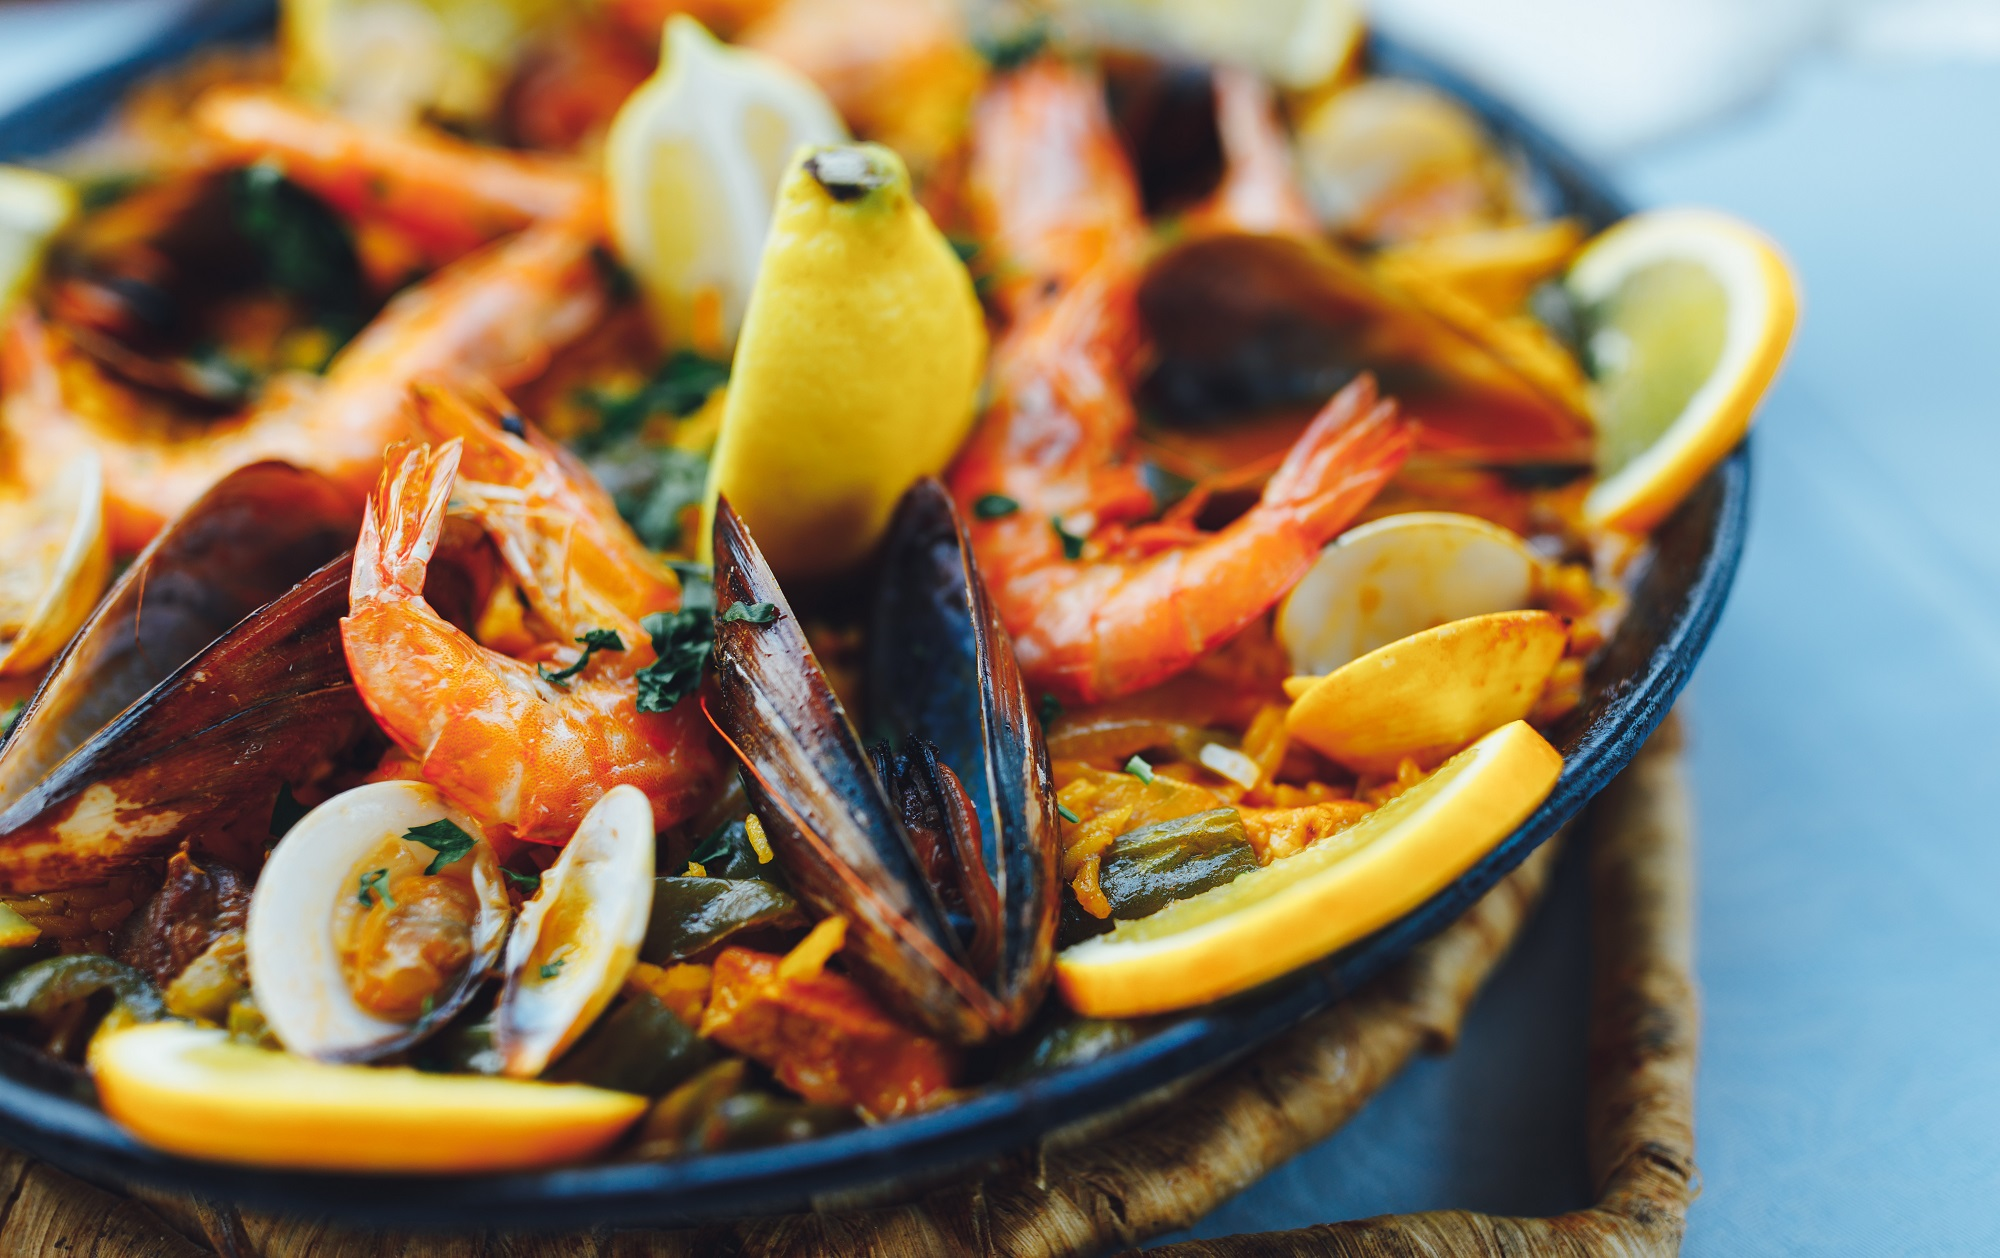 Seafood can speed up metabolism